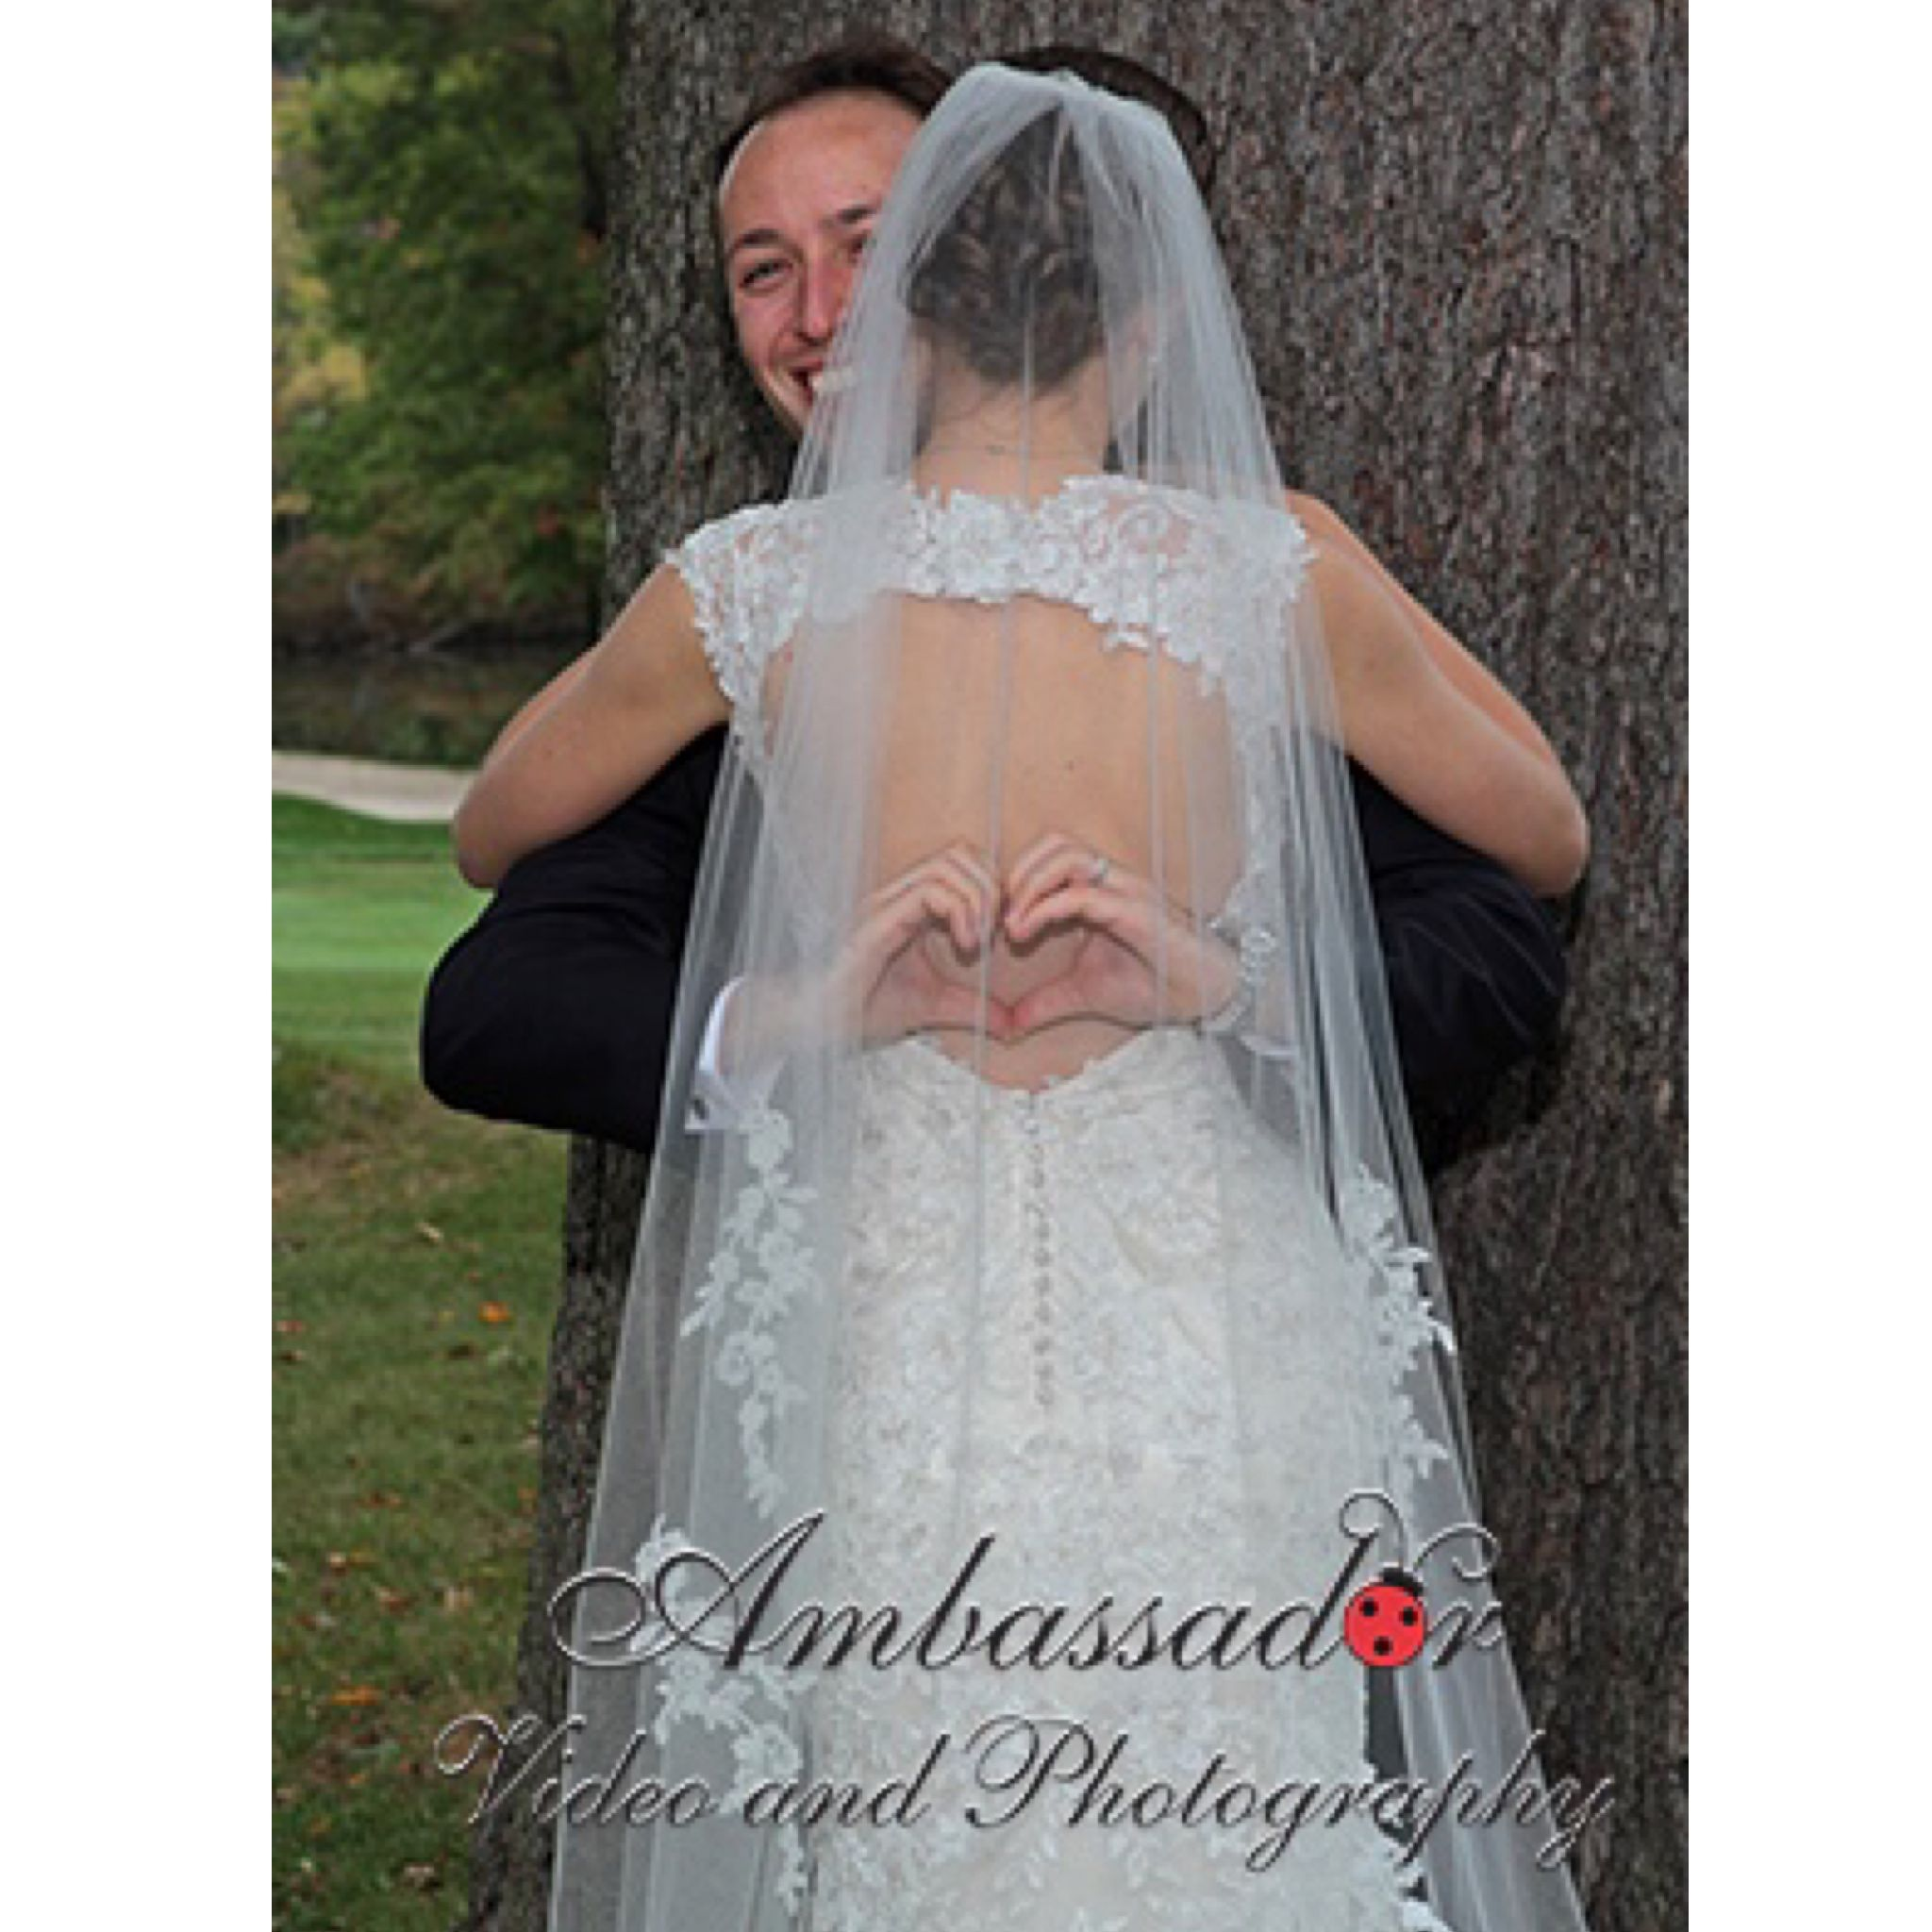 A beautiful bride in a relaxed pose wedding picture ambassador